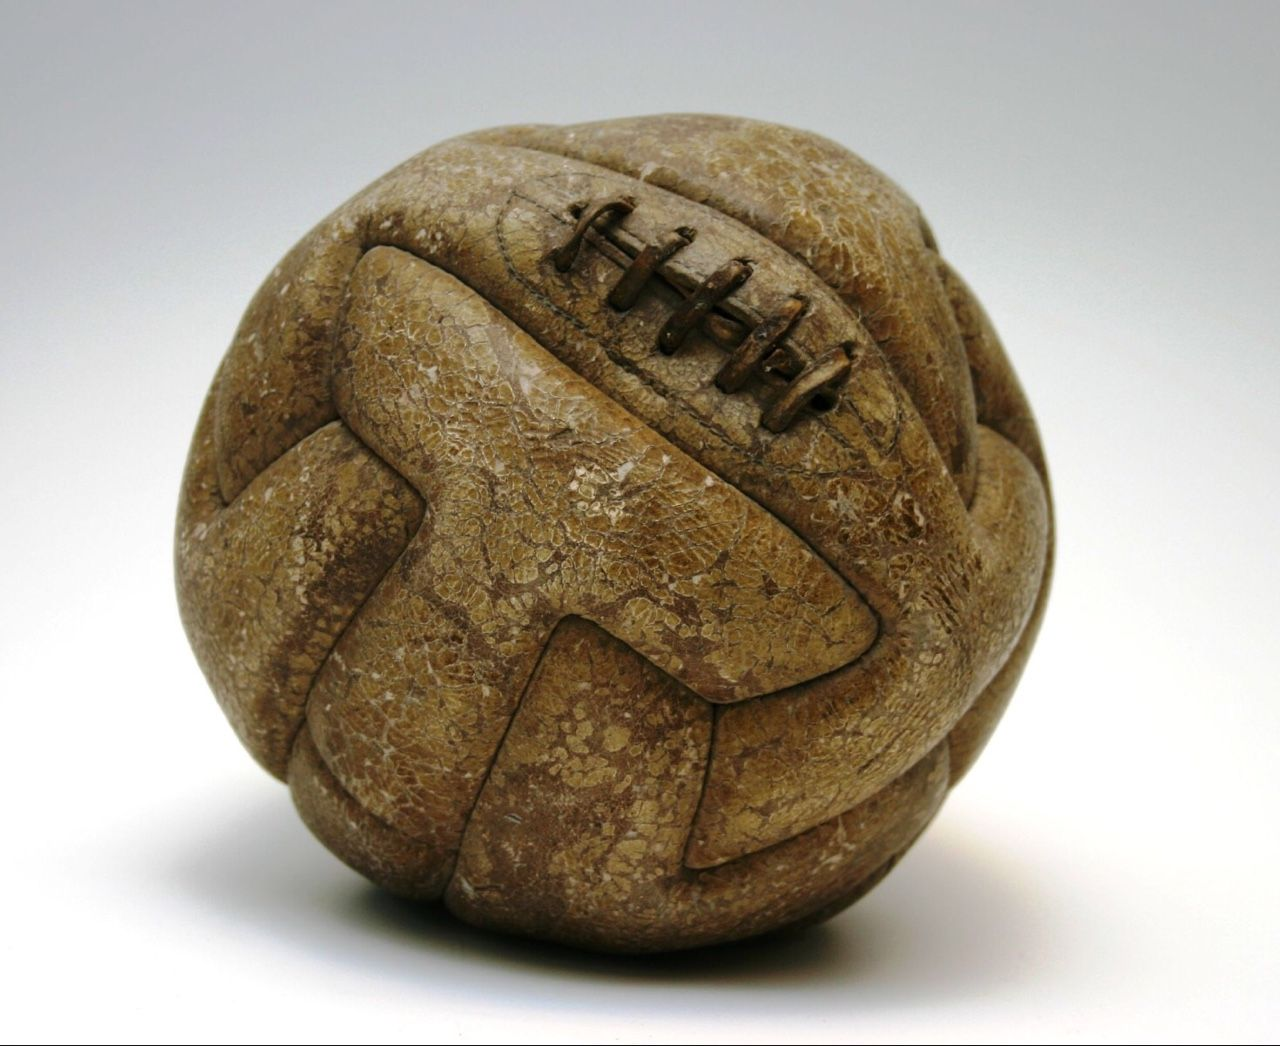 This Is 1 Of 2 Balls Used In The First World Cup Final Held On July 30 1930 93000 Spectators Looked On As Uruguay De First World Cup World Cup World Cup Final